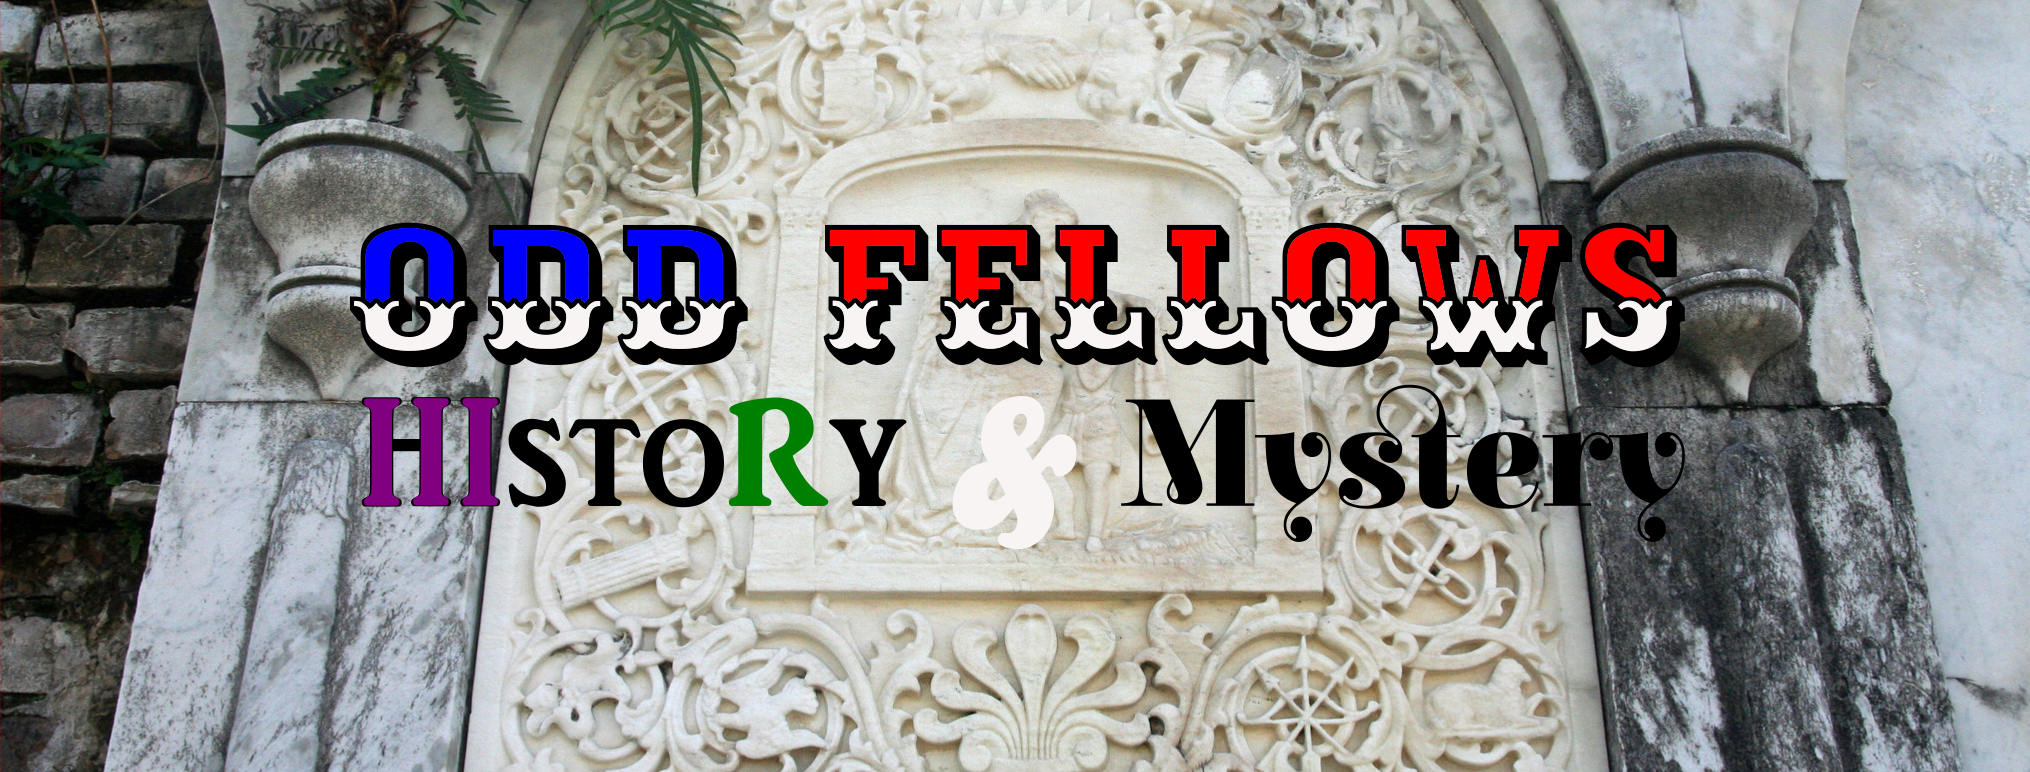 Odd Fellows History & Mystery Website